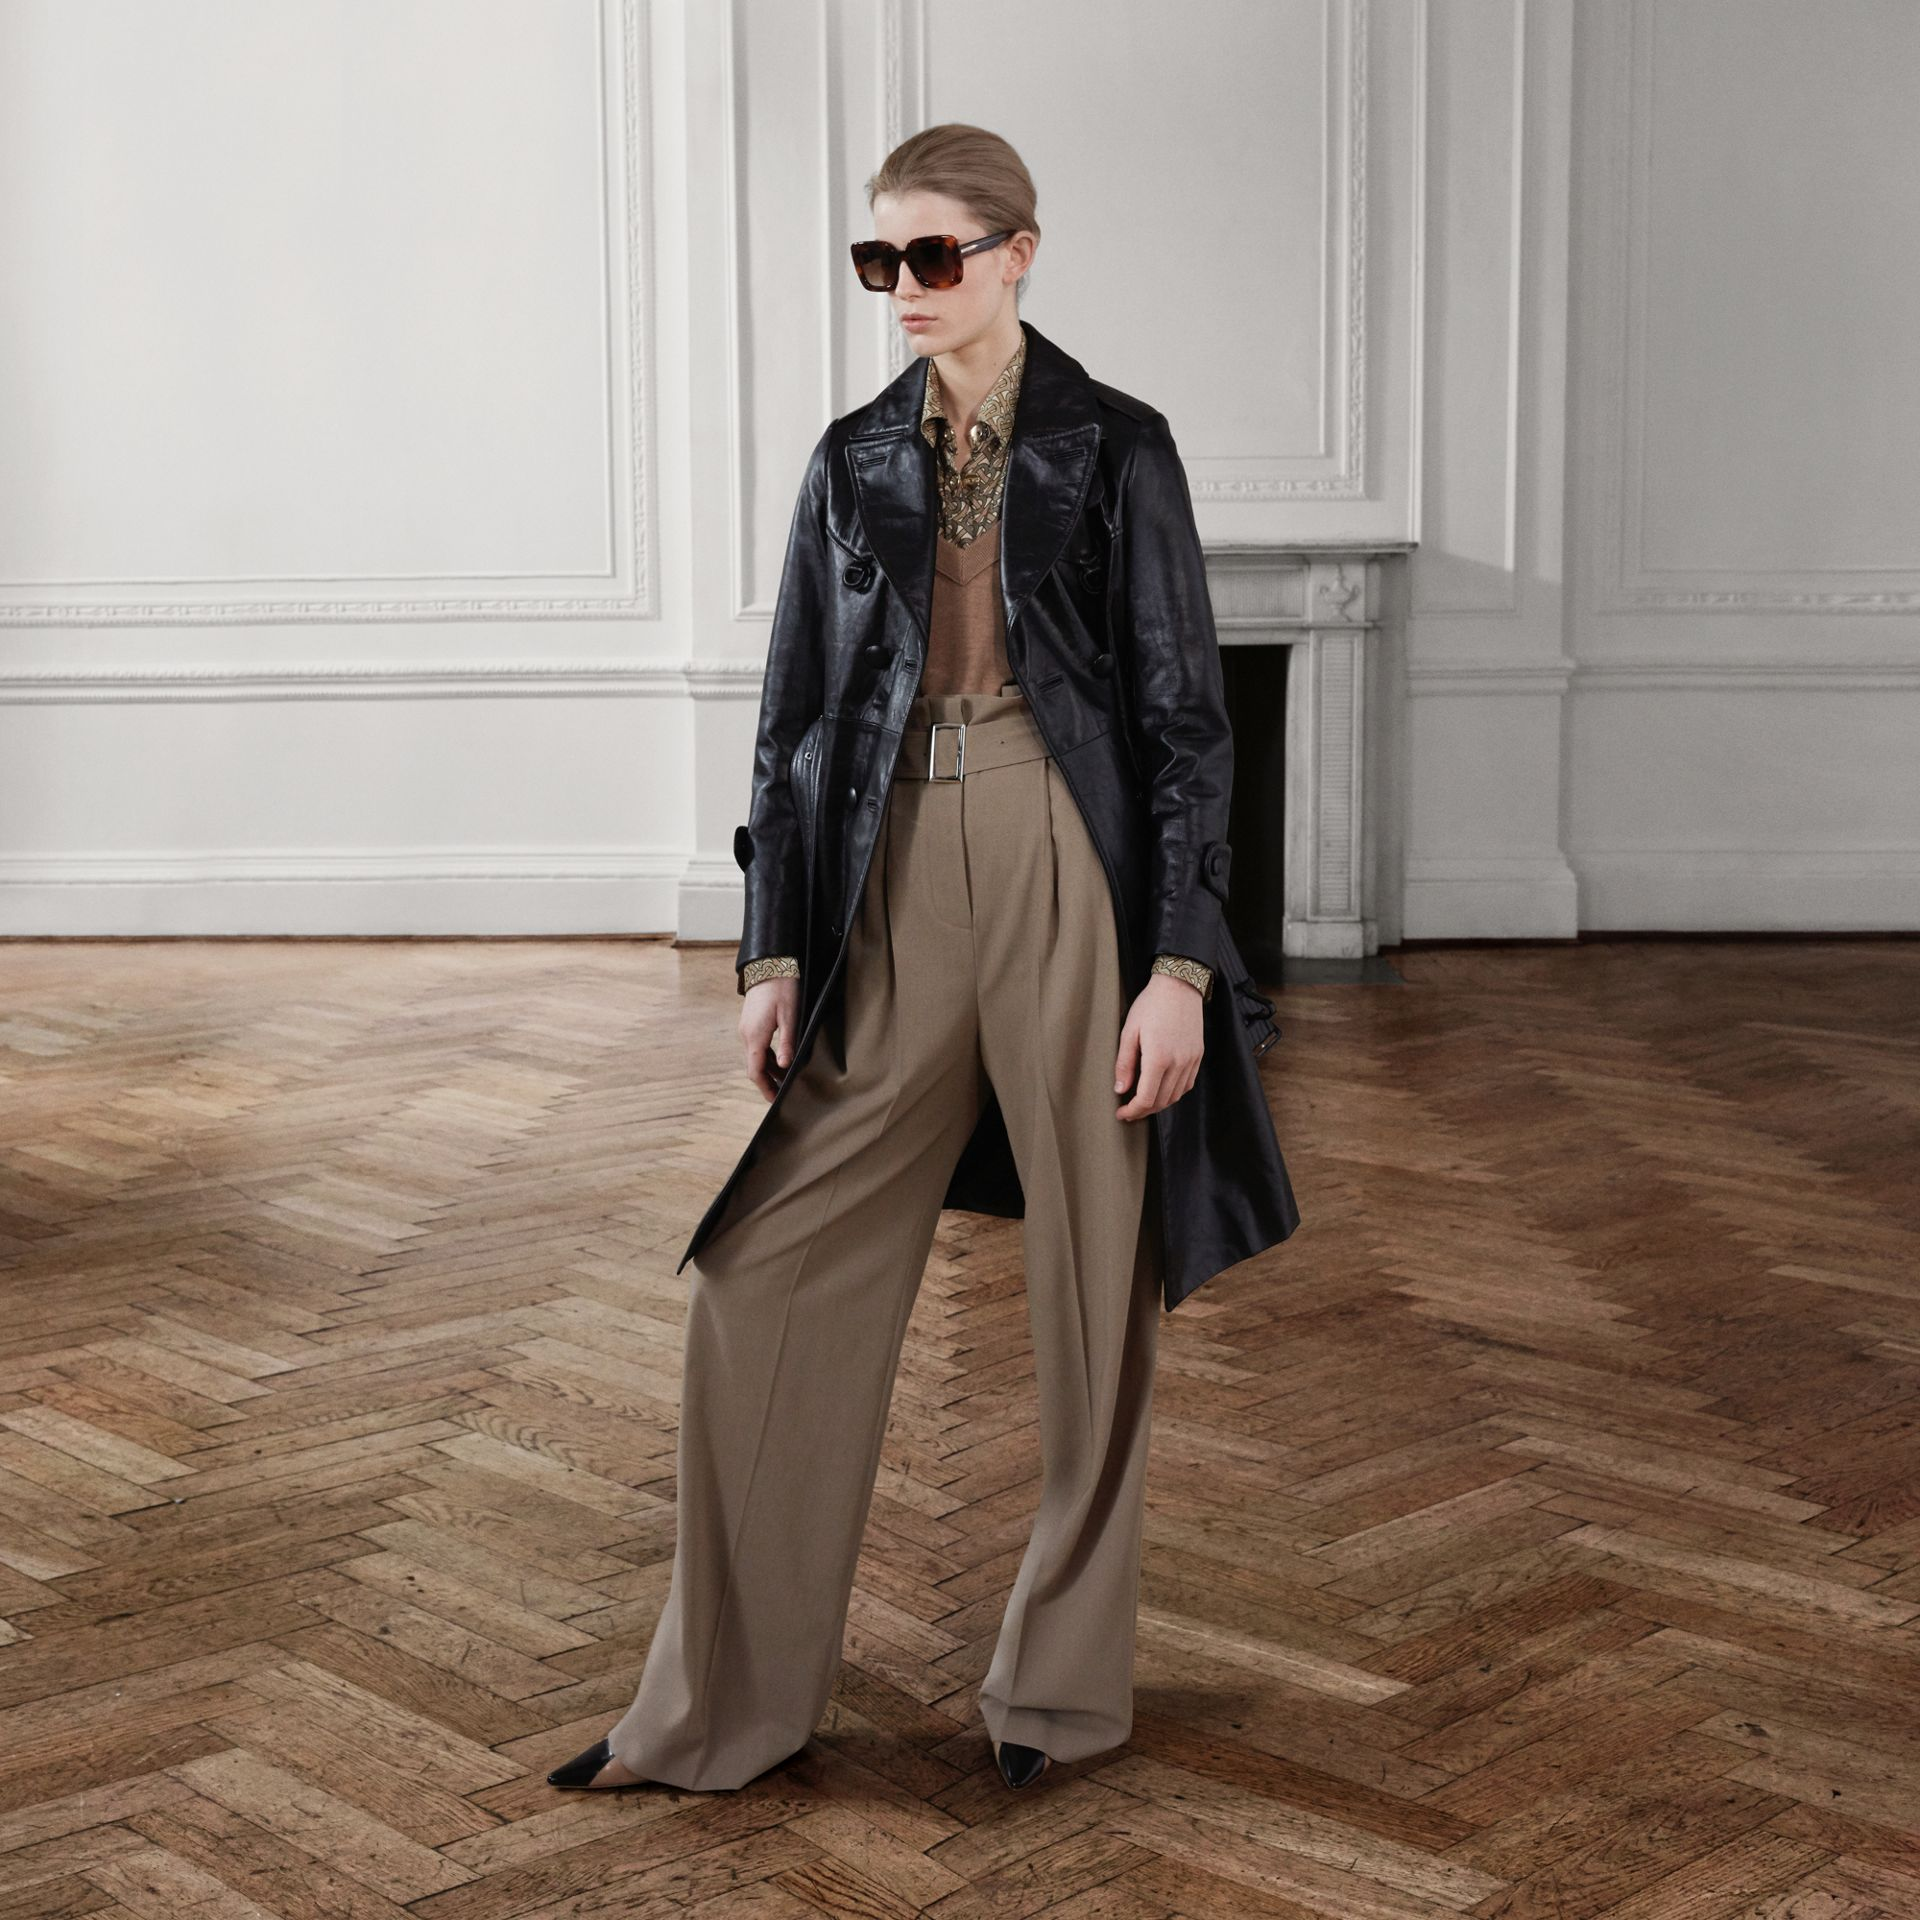 Wool Blend High-waisted Trousers in Warm Taupe - Women | Burberry - gallery image 1